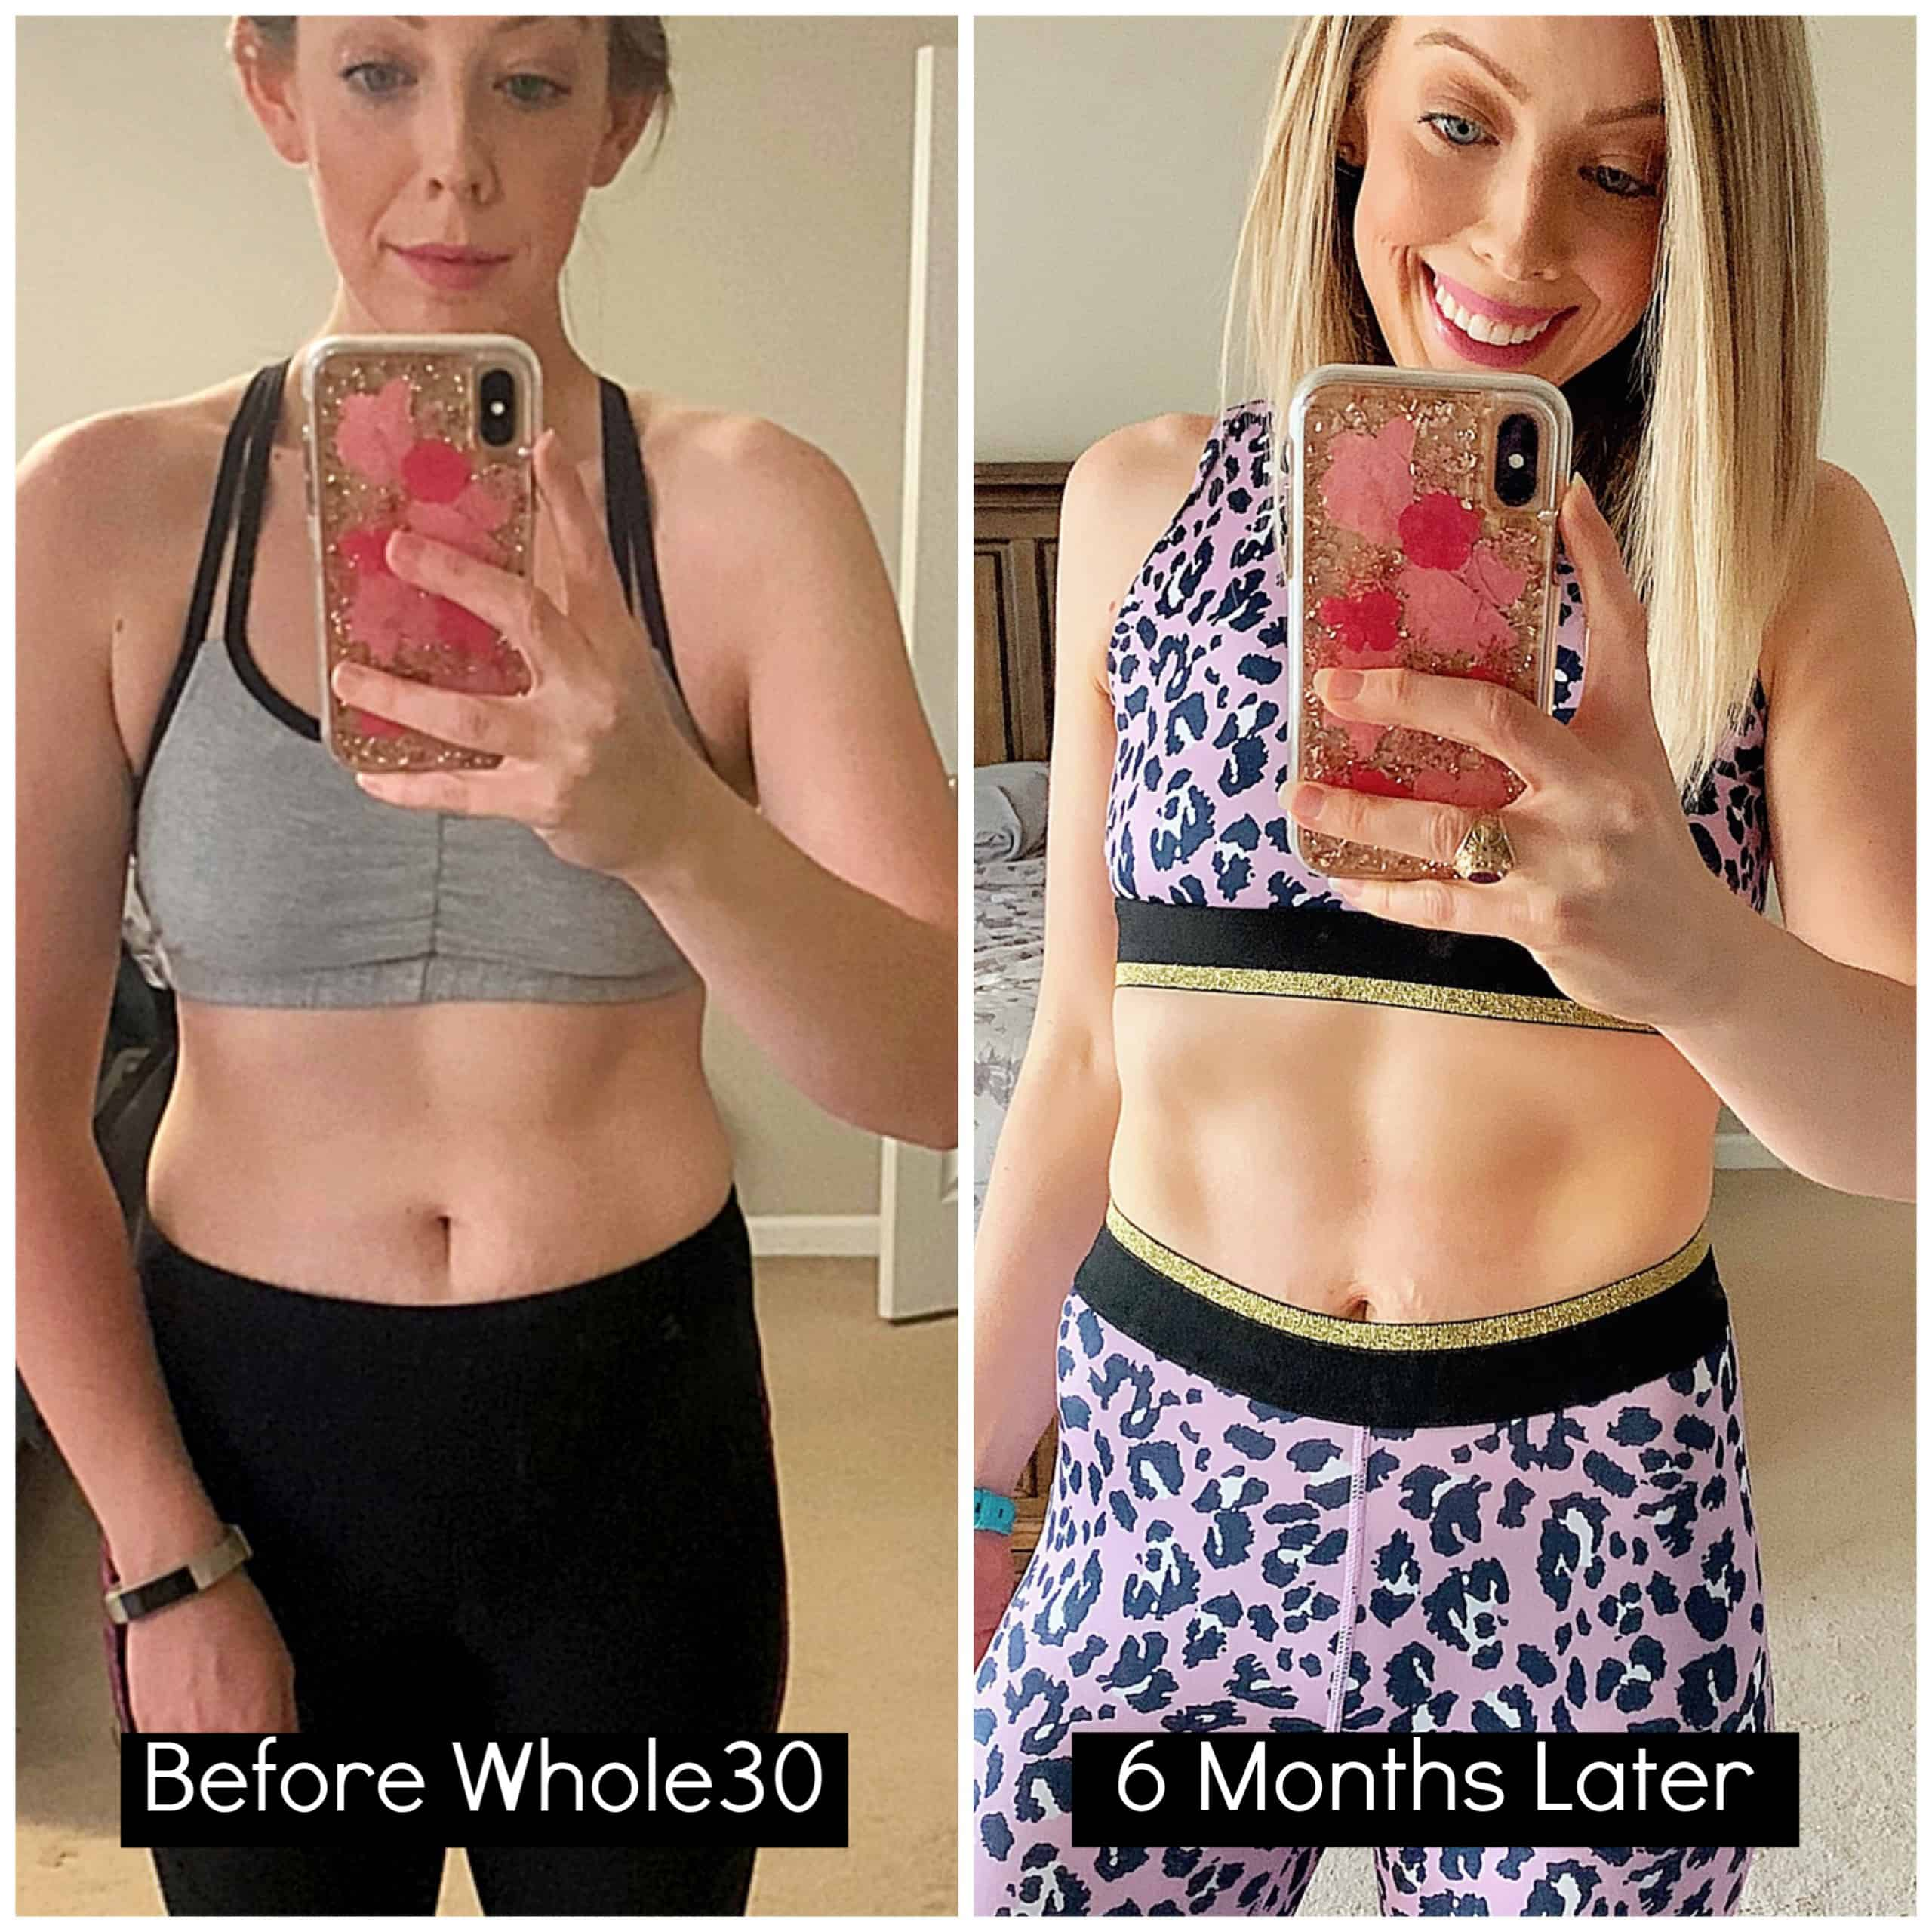 Curious about doing Whole30? I'm sharing my 6 month update with my success story, before/after photo results, my current diet/fitness routine, and my best Whole30 tips and recommendations. #whole30 #health #cleaneating #weightloss #diet